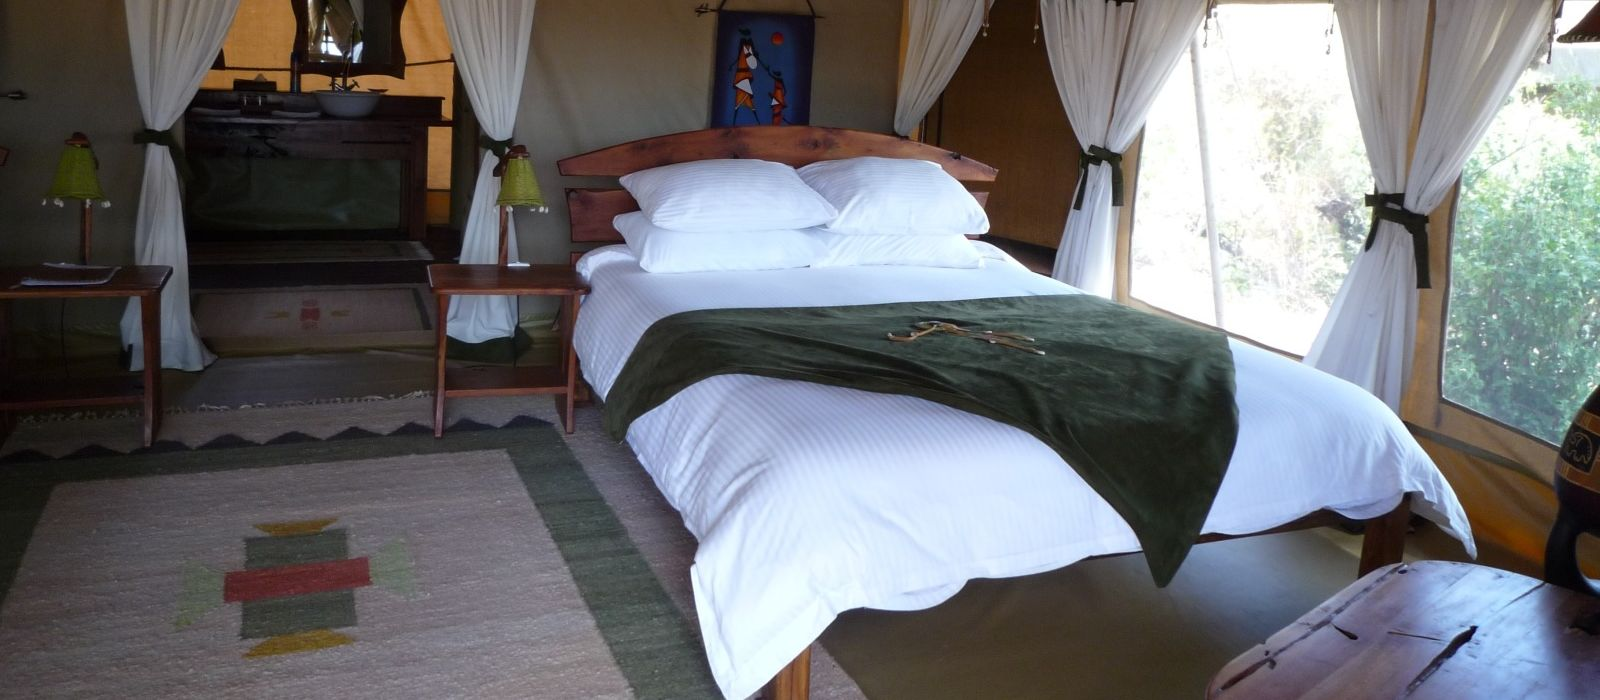 Elephant Bedroom Camp Hotel In Kenya